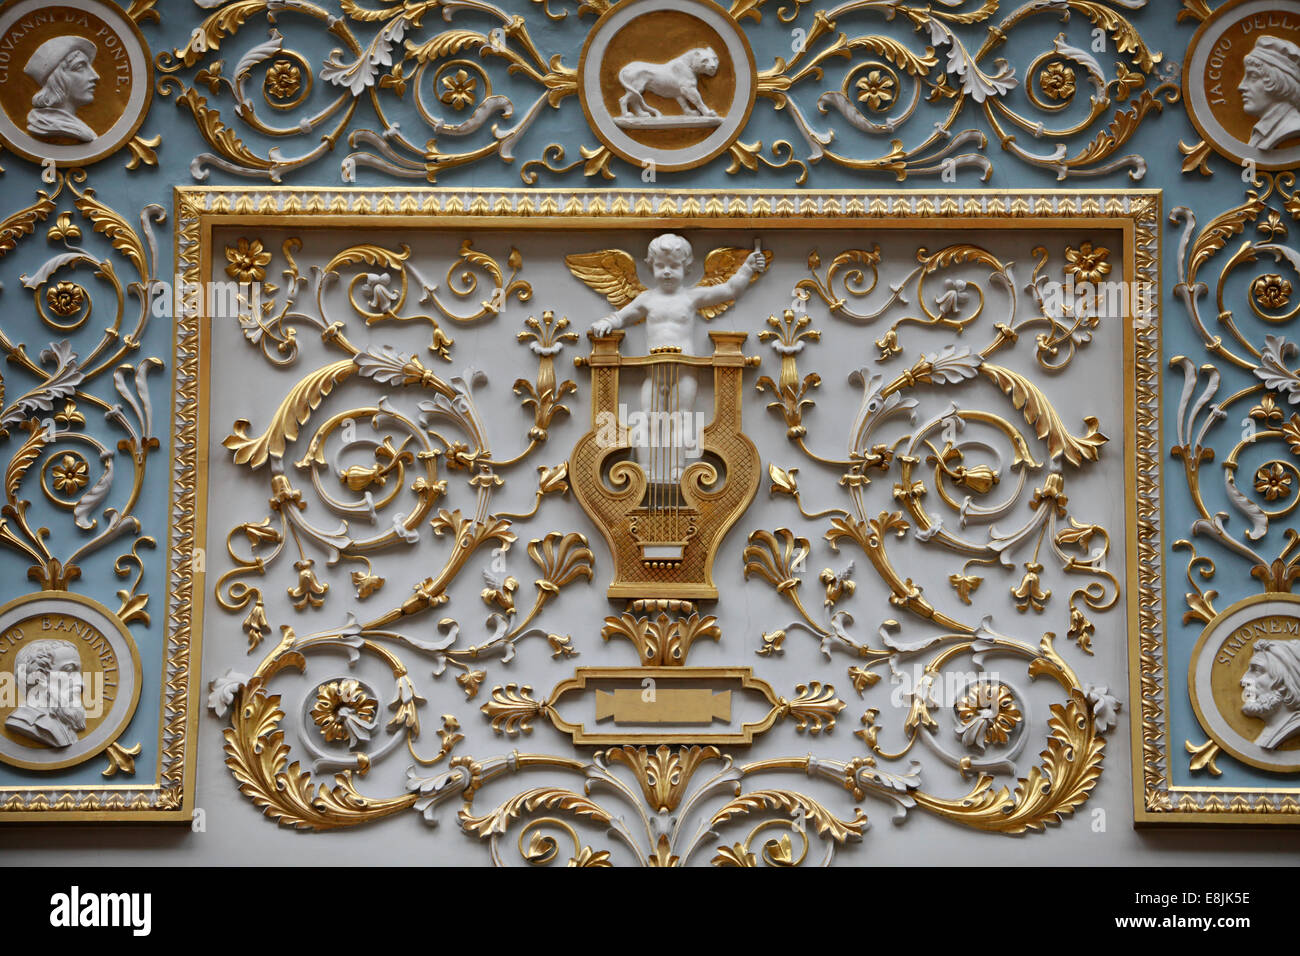 Hermitage Museum. Glass room art work - Stock Image